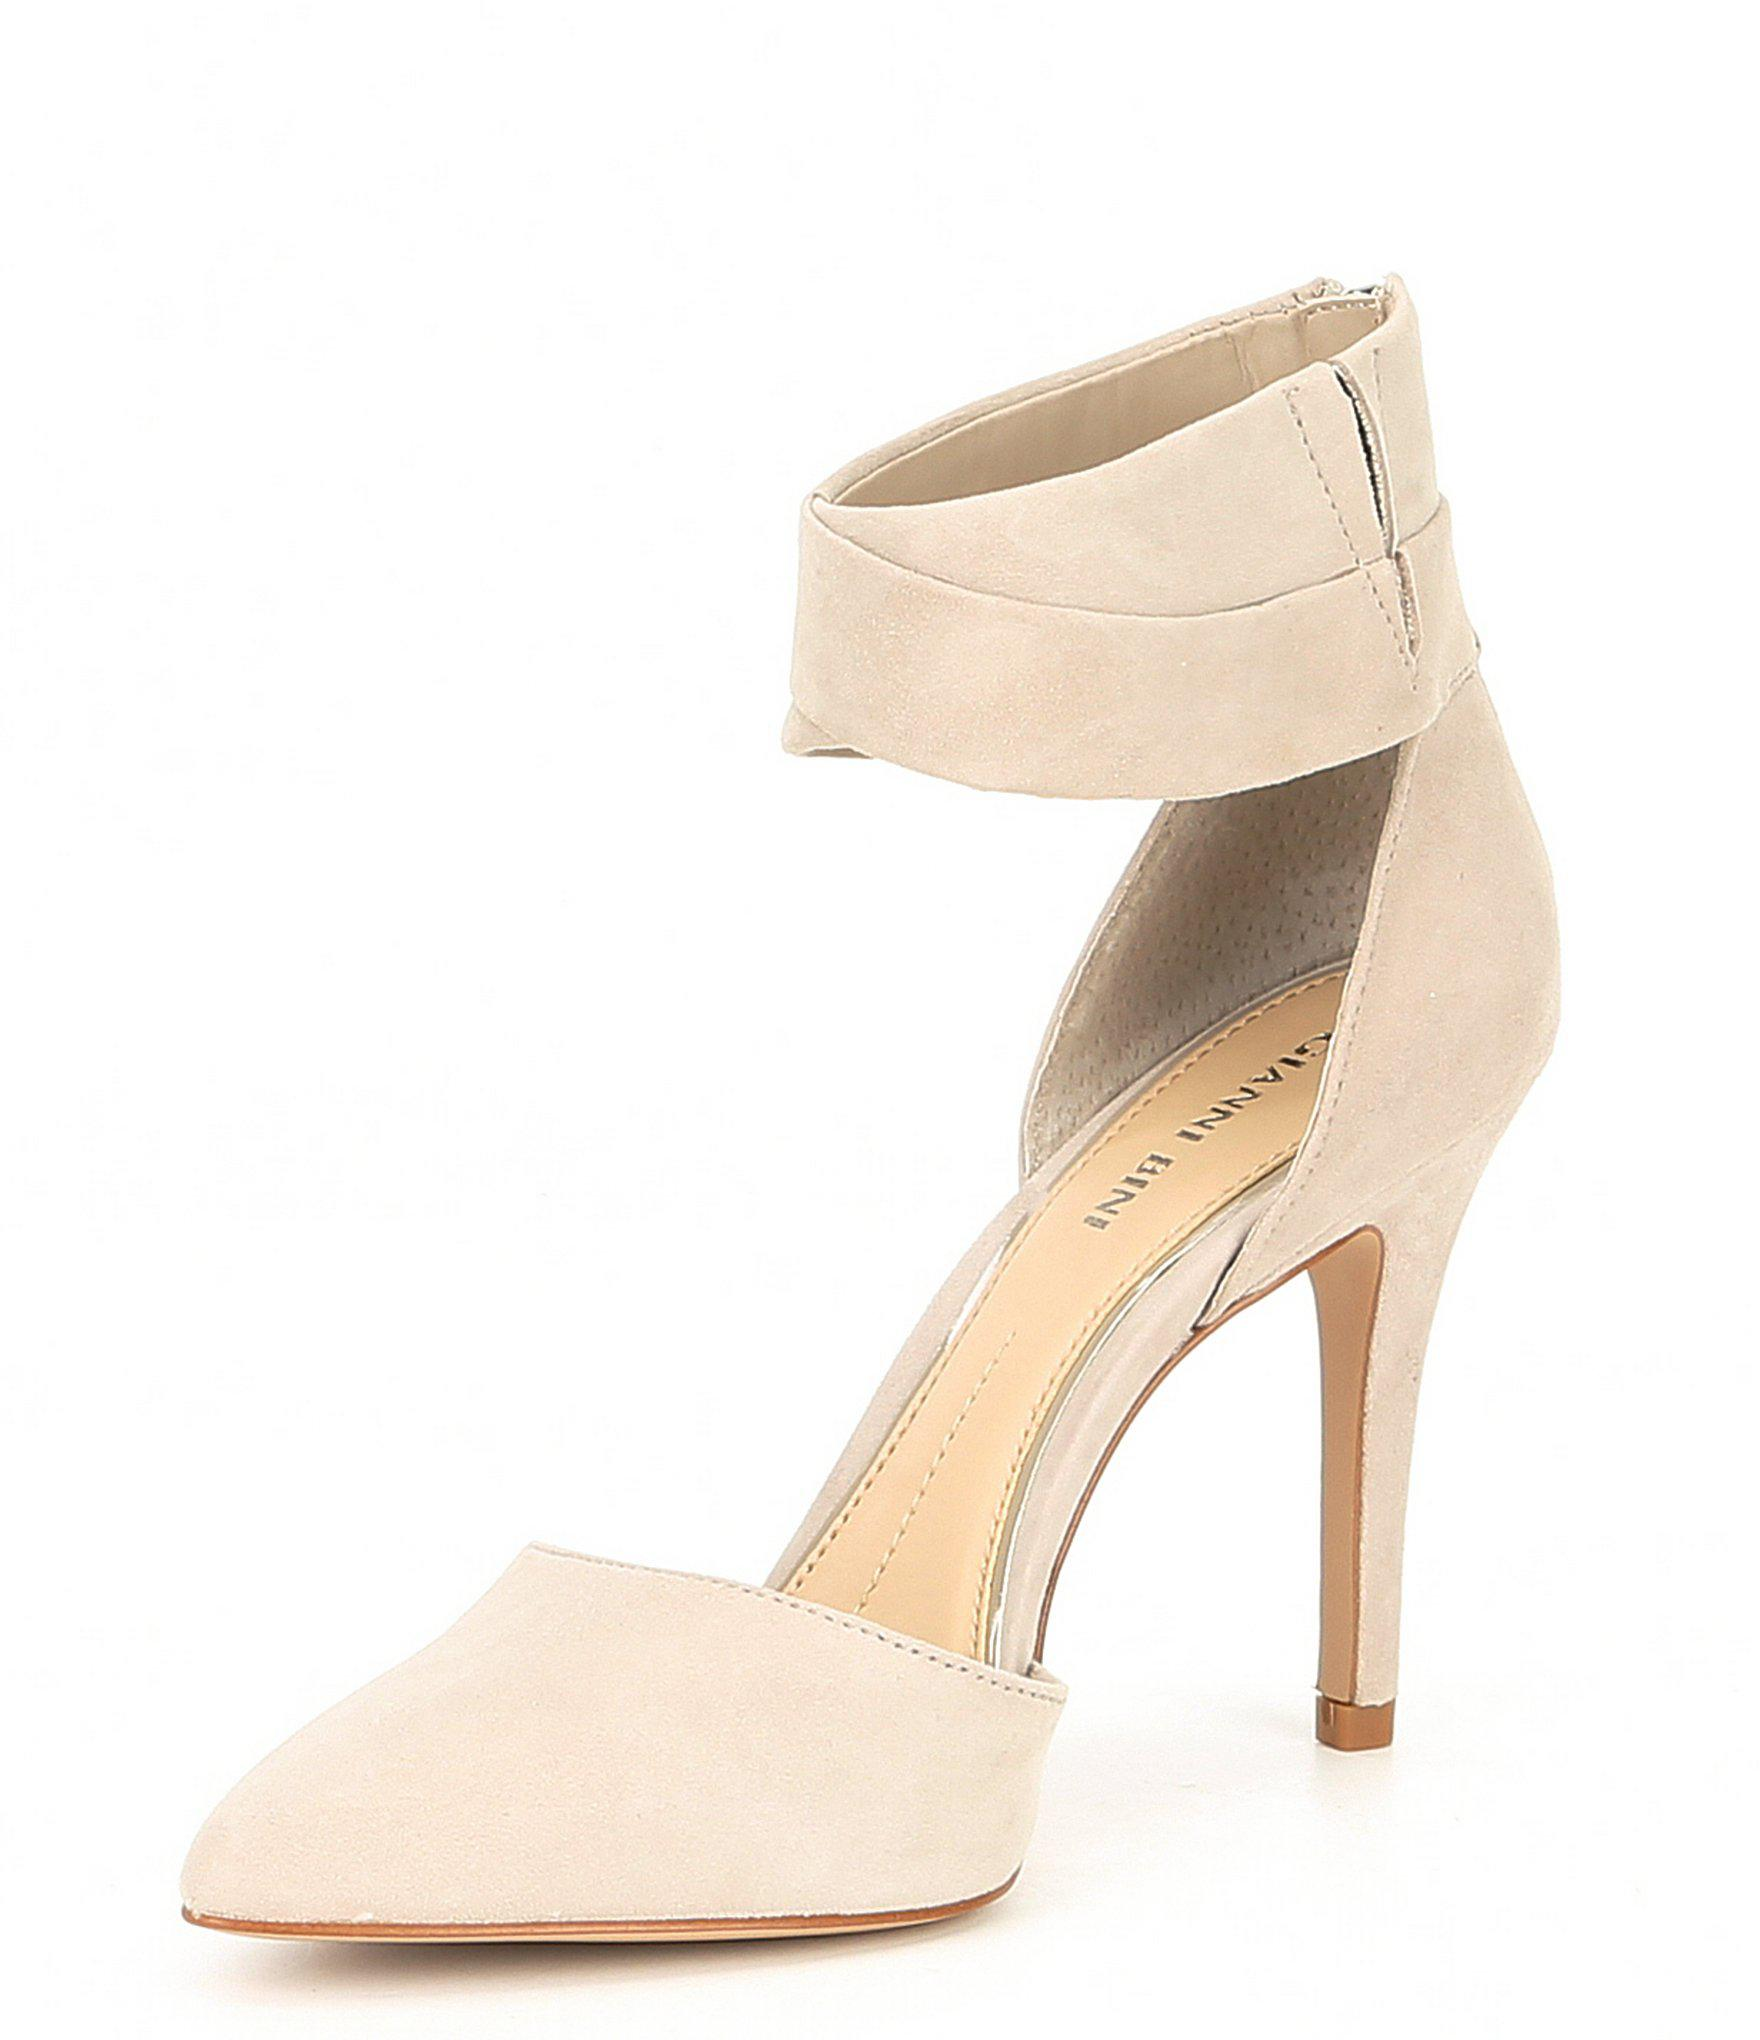 f014e14ae7 Gianni Bini Marstell Suede Two-piece Pumps in Natural - Lyst